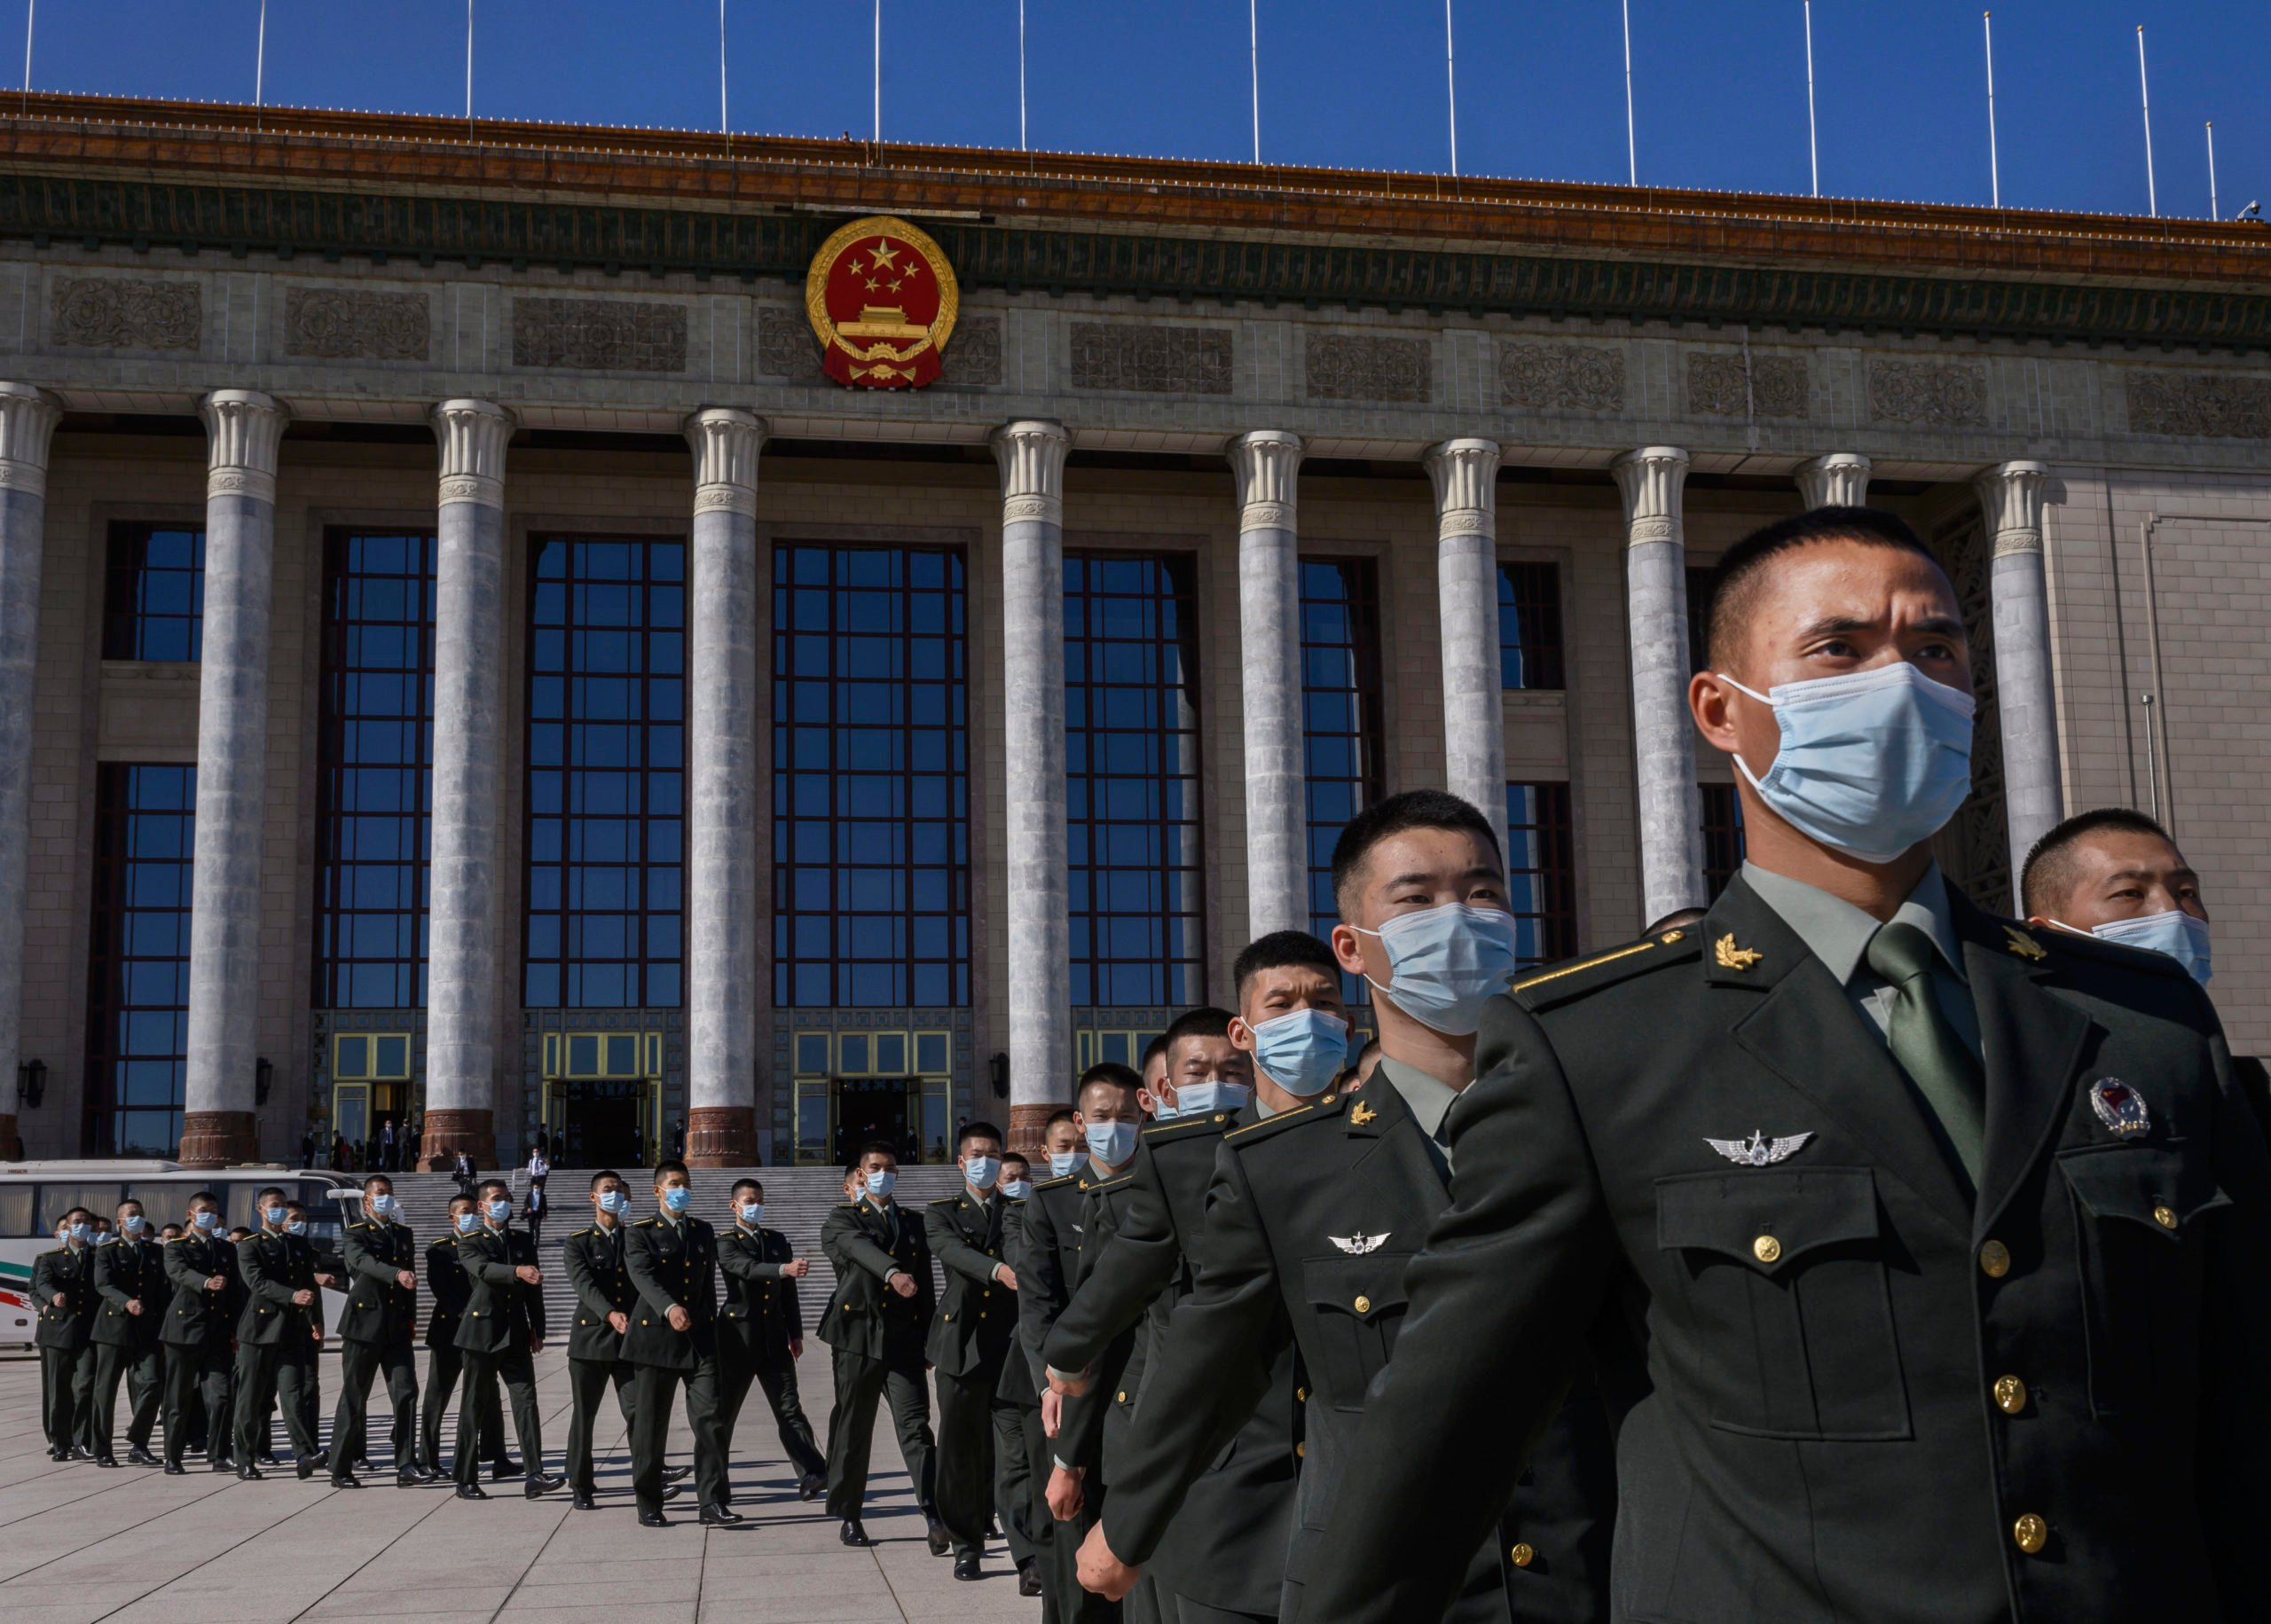 Chinese soldiers from the People's Liberation Army wear protective masks as they march during a ceremony marking the 70th anniversary of China's entry into the Korean War, on Oct. 23 in Beijing, China. (Kevin Frayer/Getty Images)